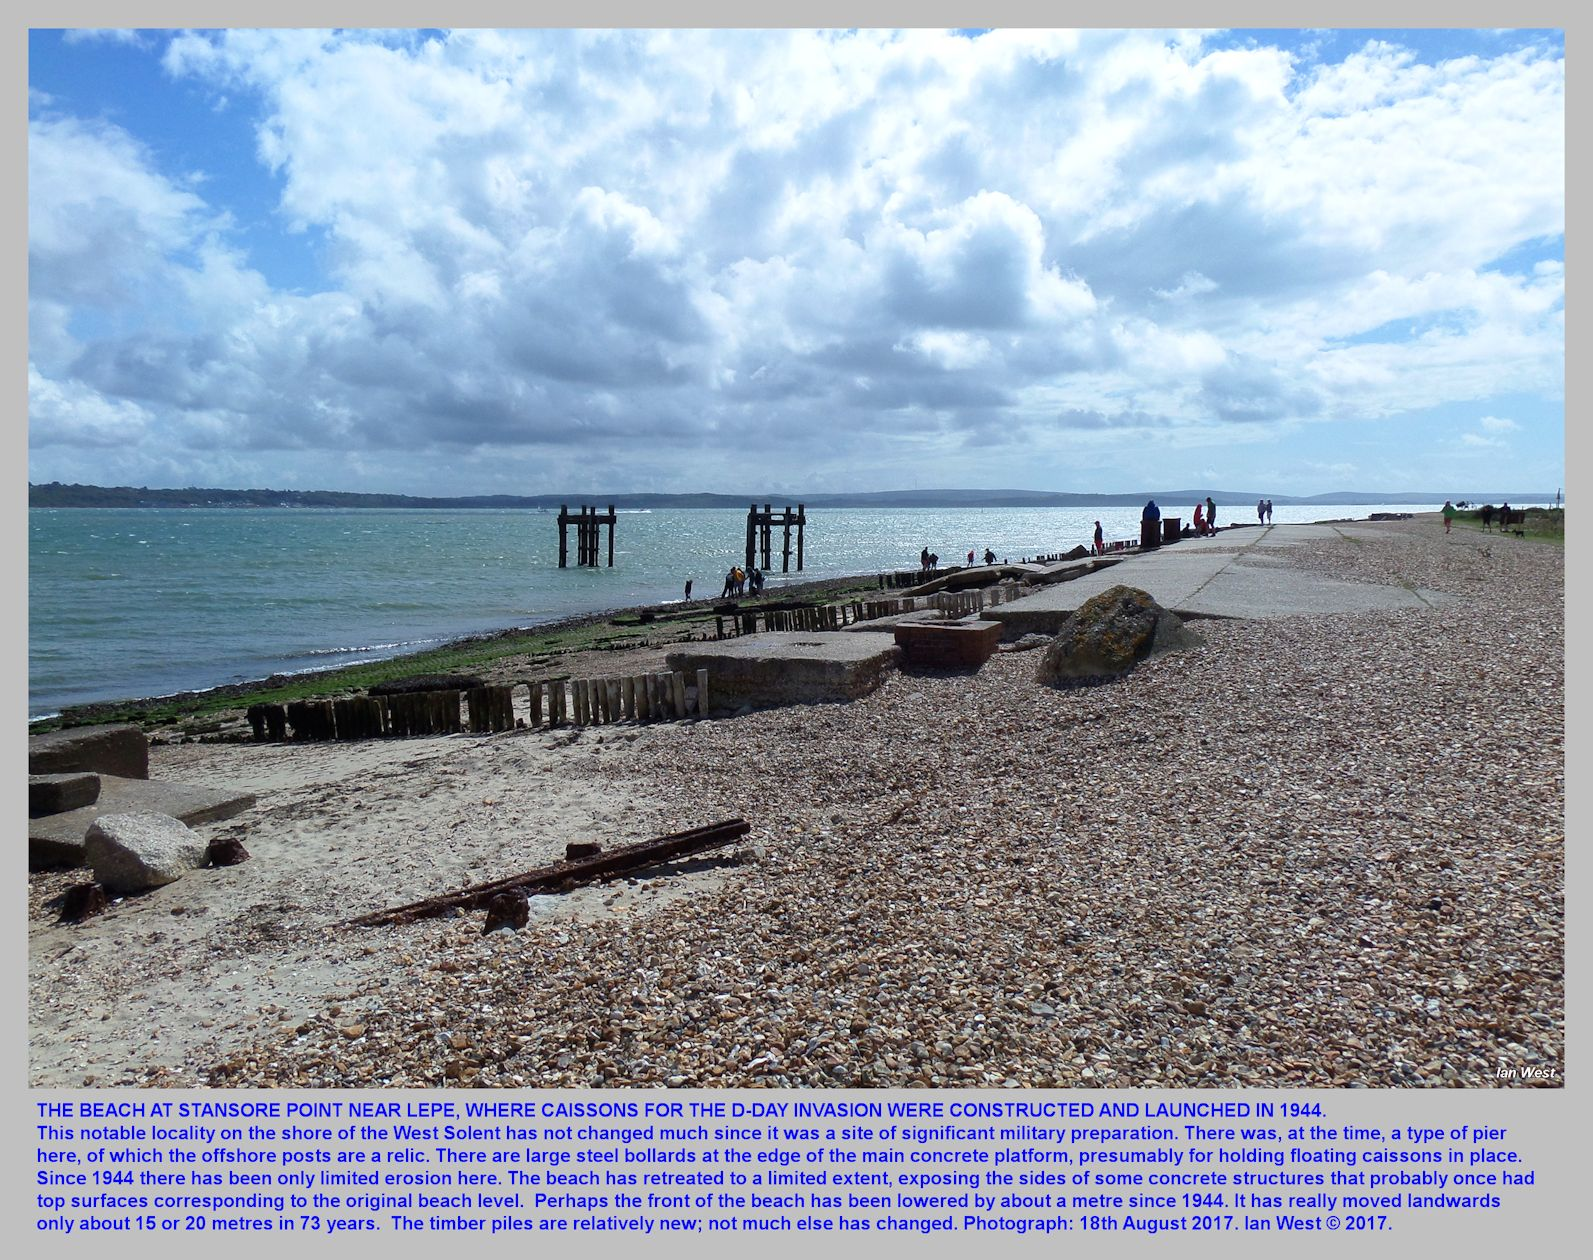 D-Day, Normandy Invasion, launching Beach, at Stansore Point, east of Lepe. Hampshire, 18th August 2017